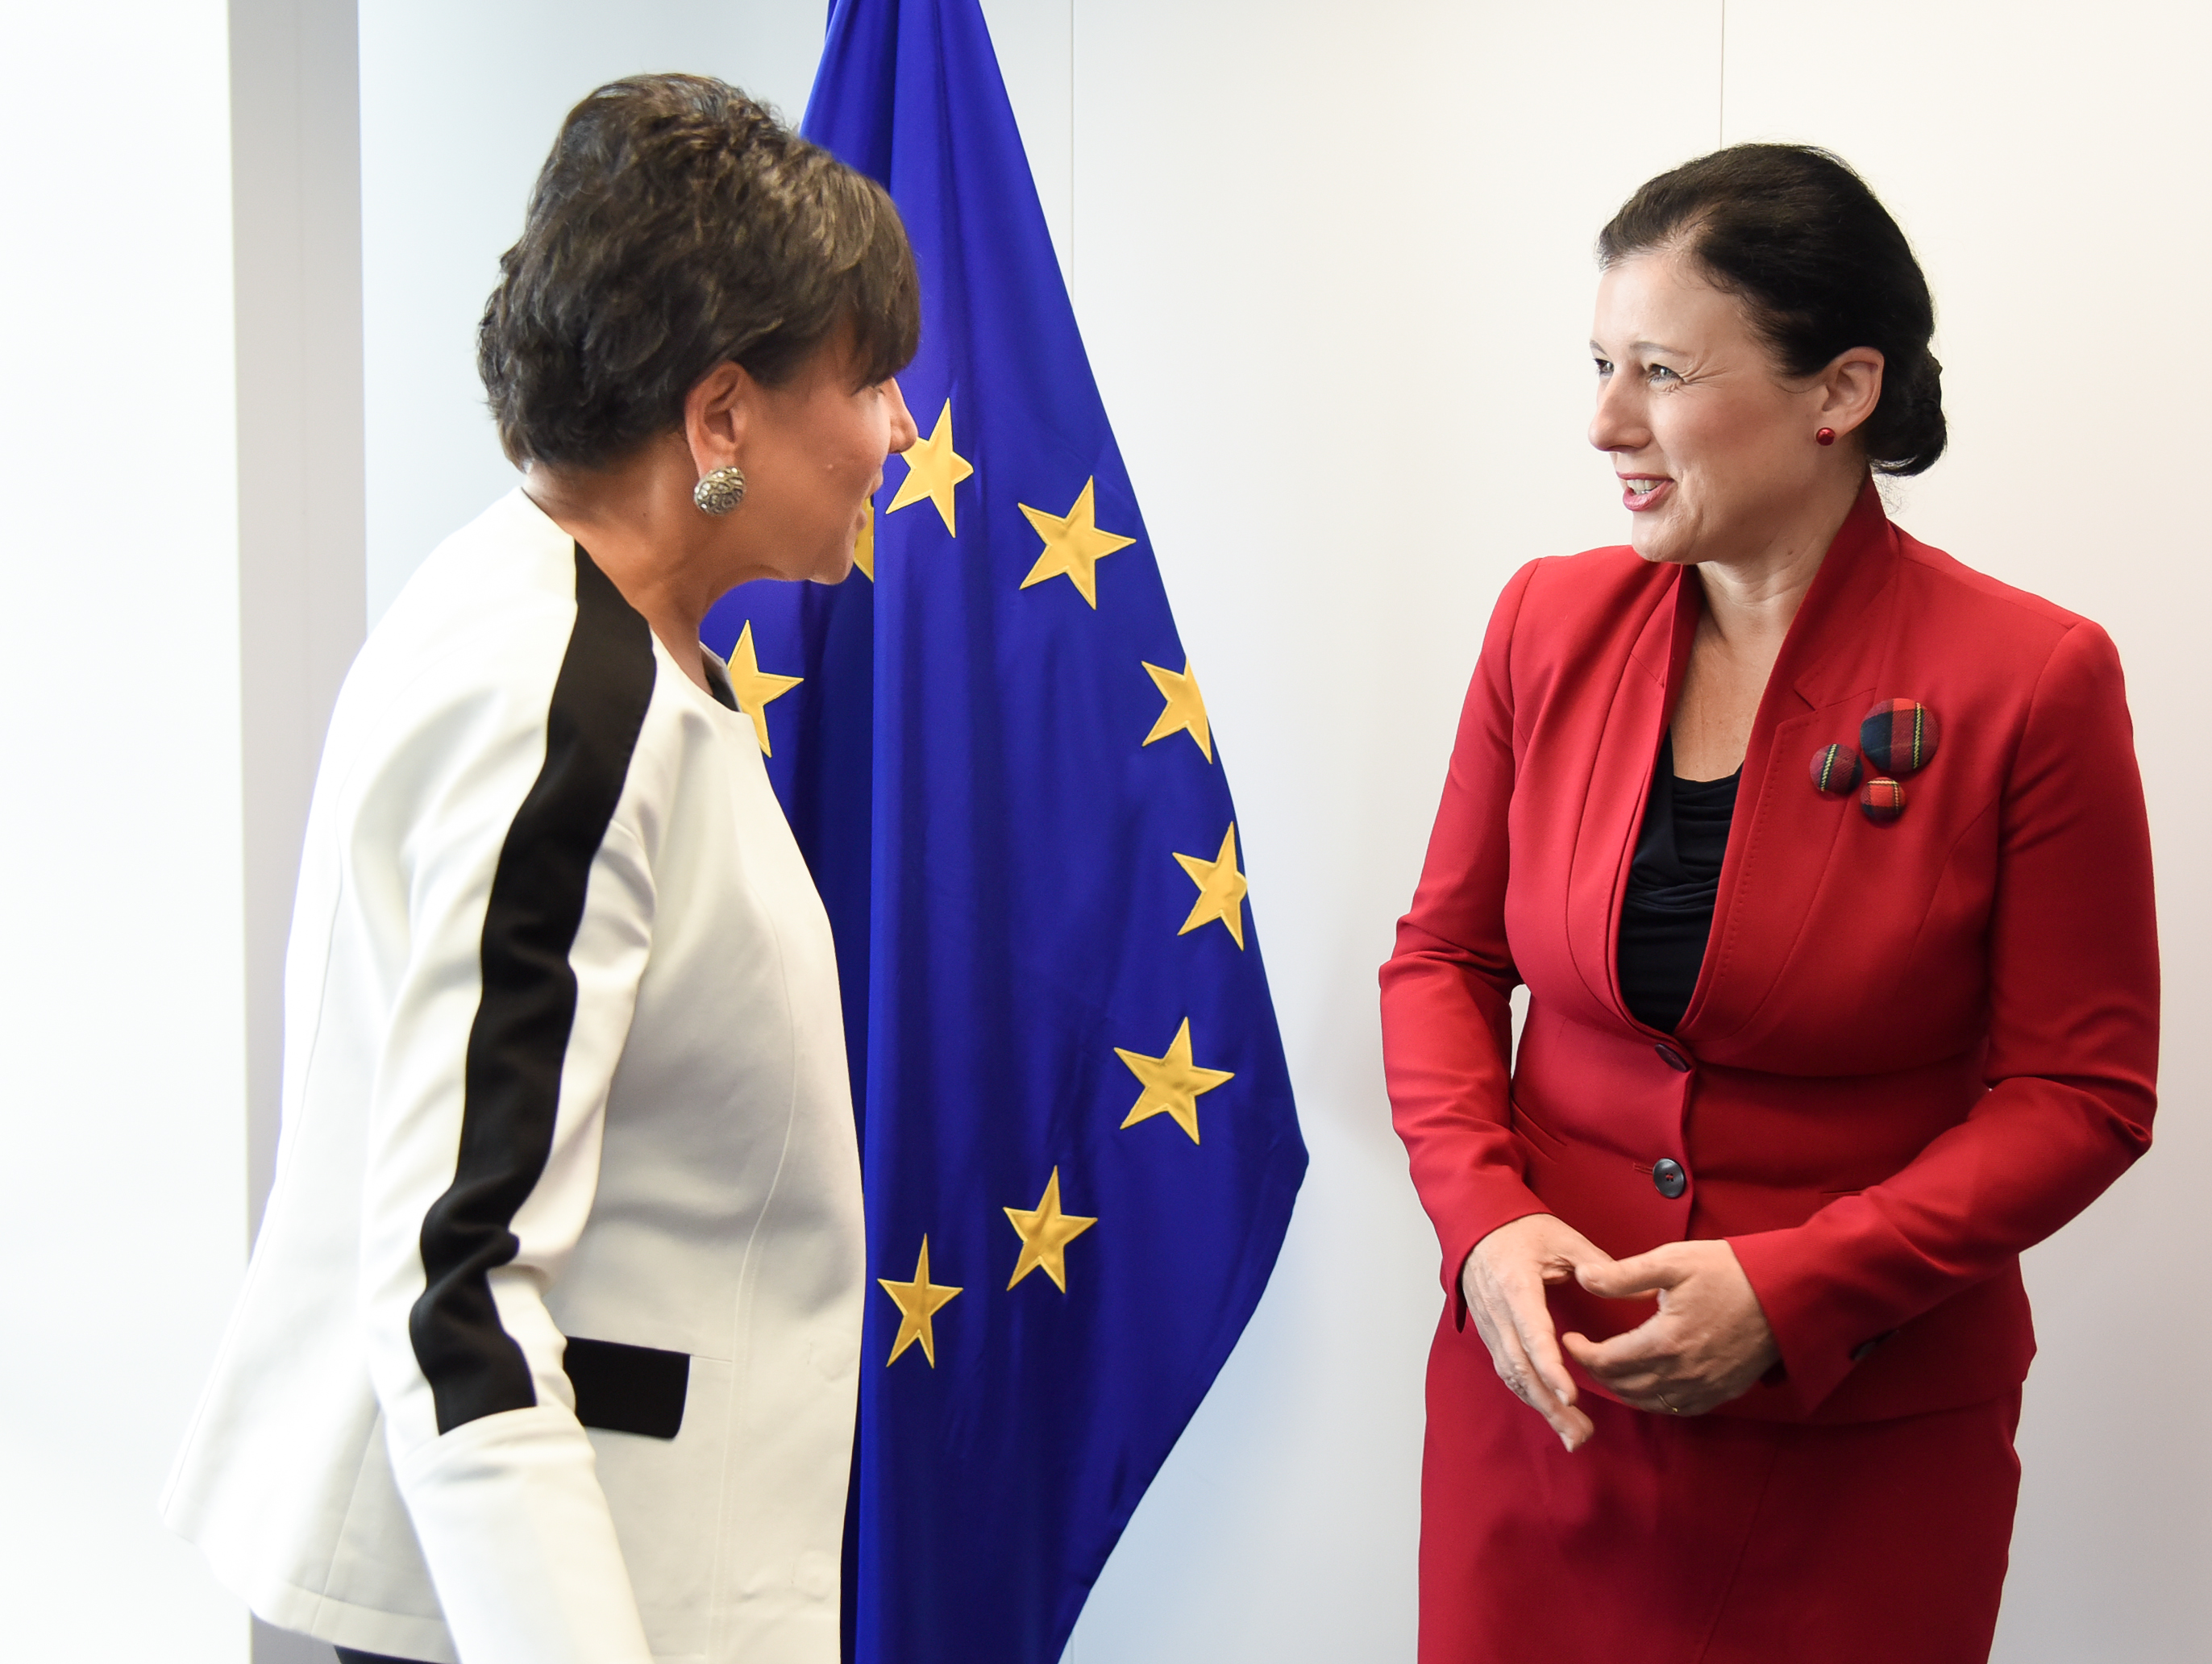 US Secretary of Commerce Penny Pritzker met with EU Justice Commissioner Vera Jourová on 23 July in Brussels